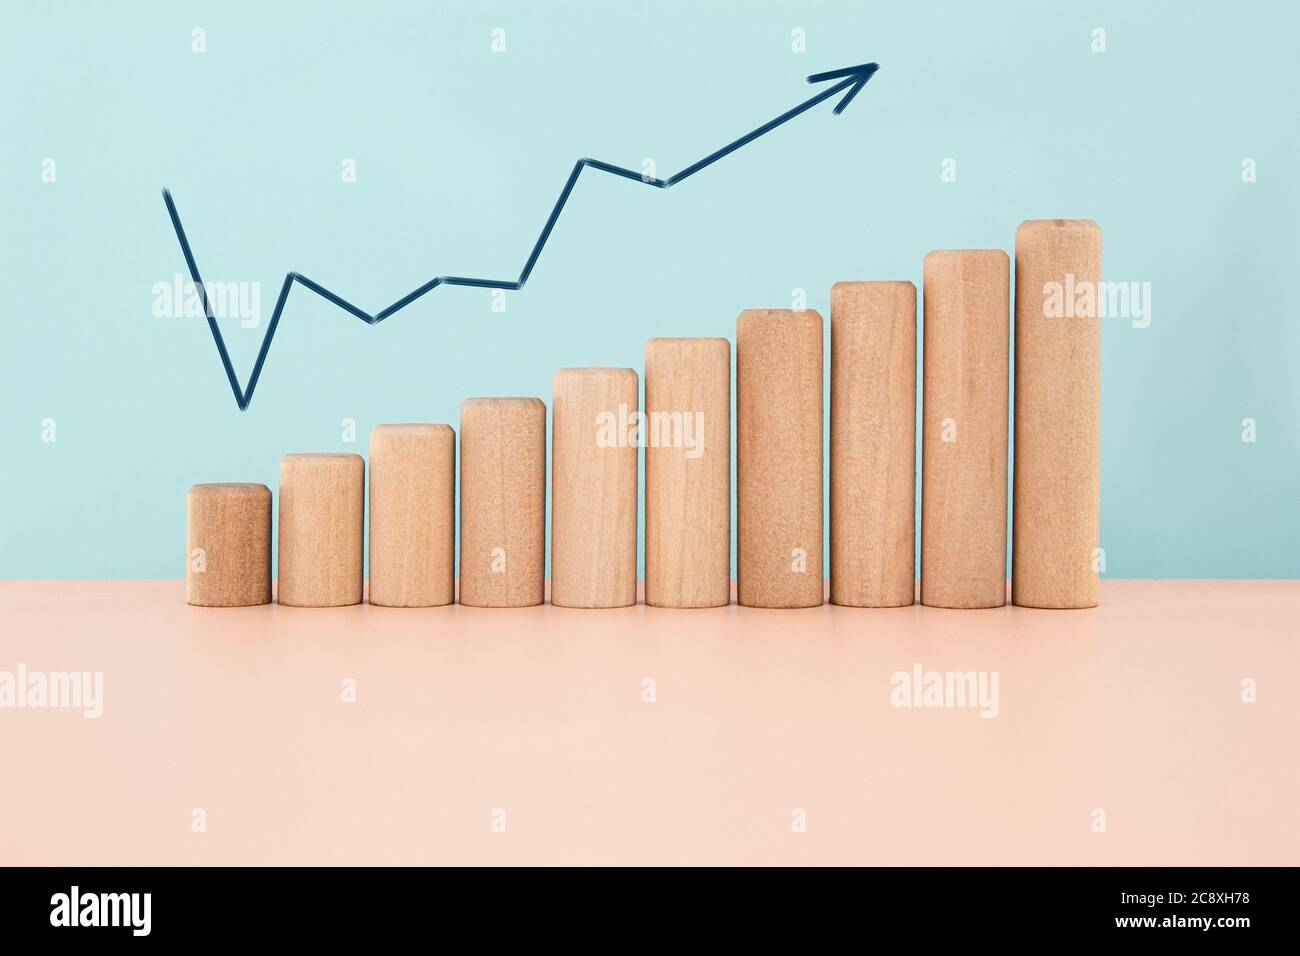 Business growth concept on blue background. Wood block increasing chart. Stock Photo